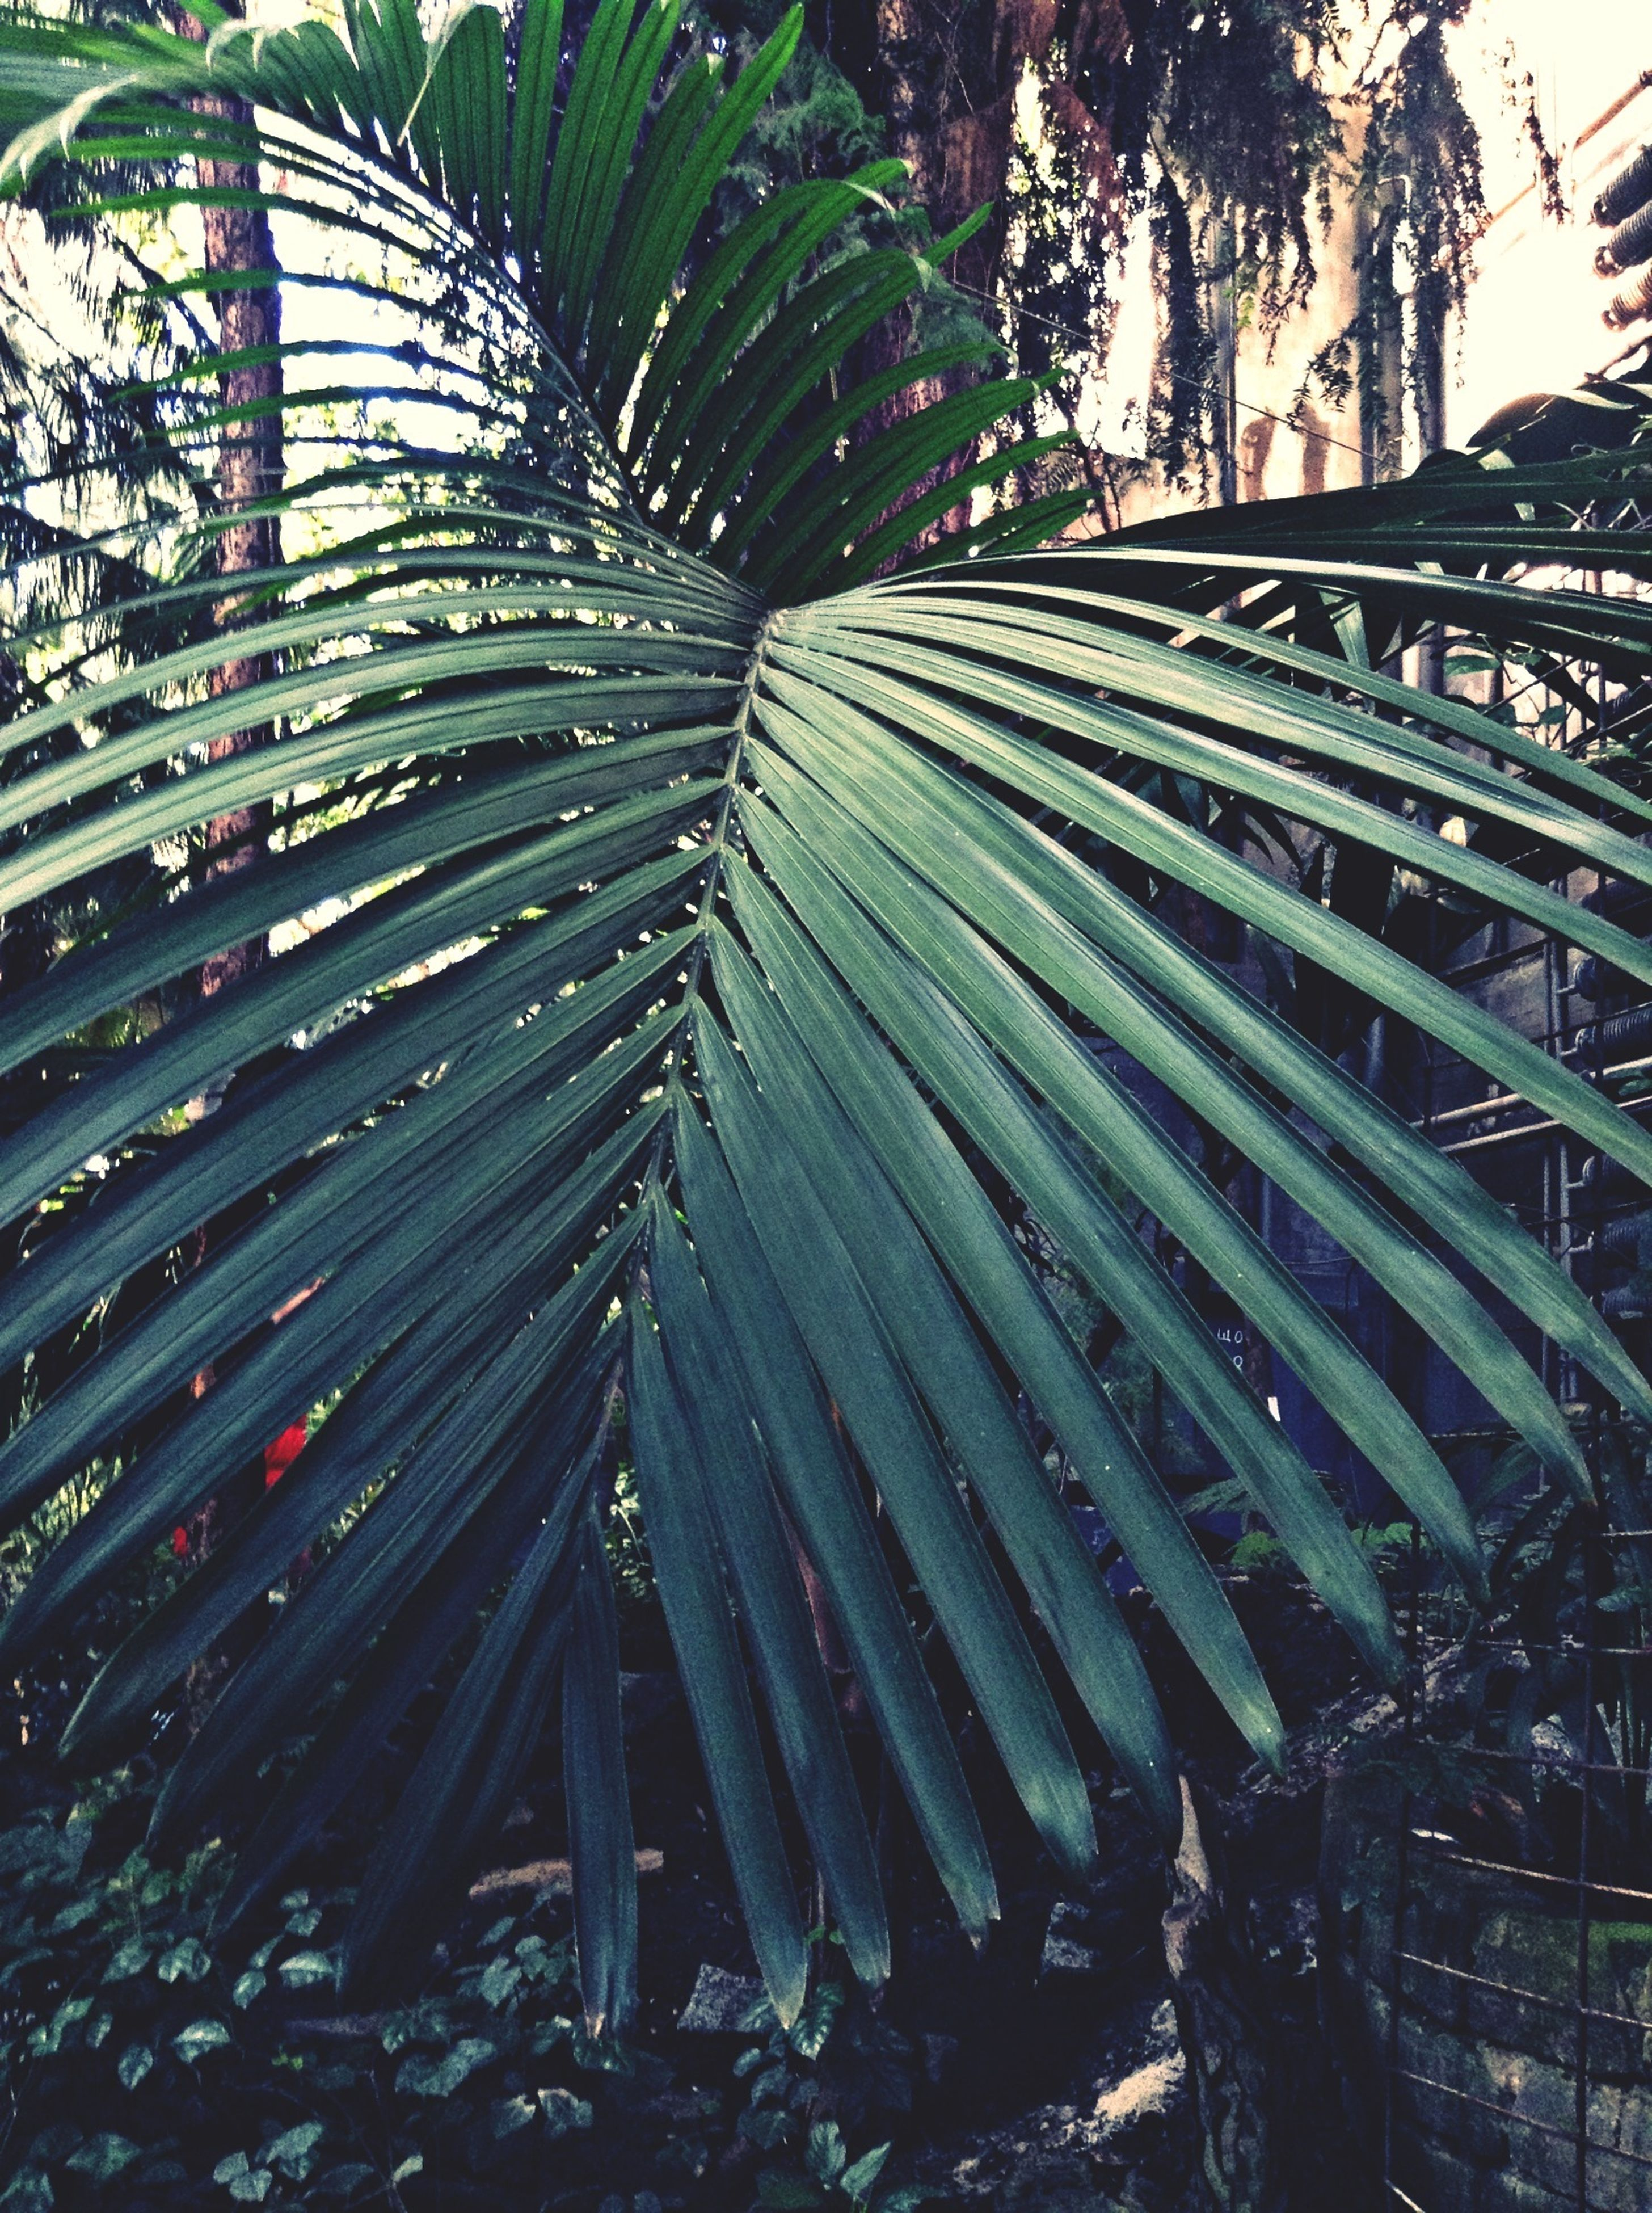 tree, growth, nature, low angle view, leaf, plant, outdoors, day, no people, branch, palm tree, tranquility, abundance, beauty in nature, high angle view, cactus, built structure, growing, pattern, tree trunk